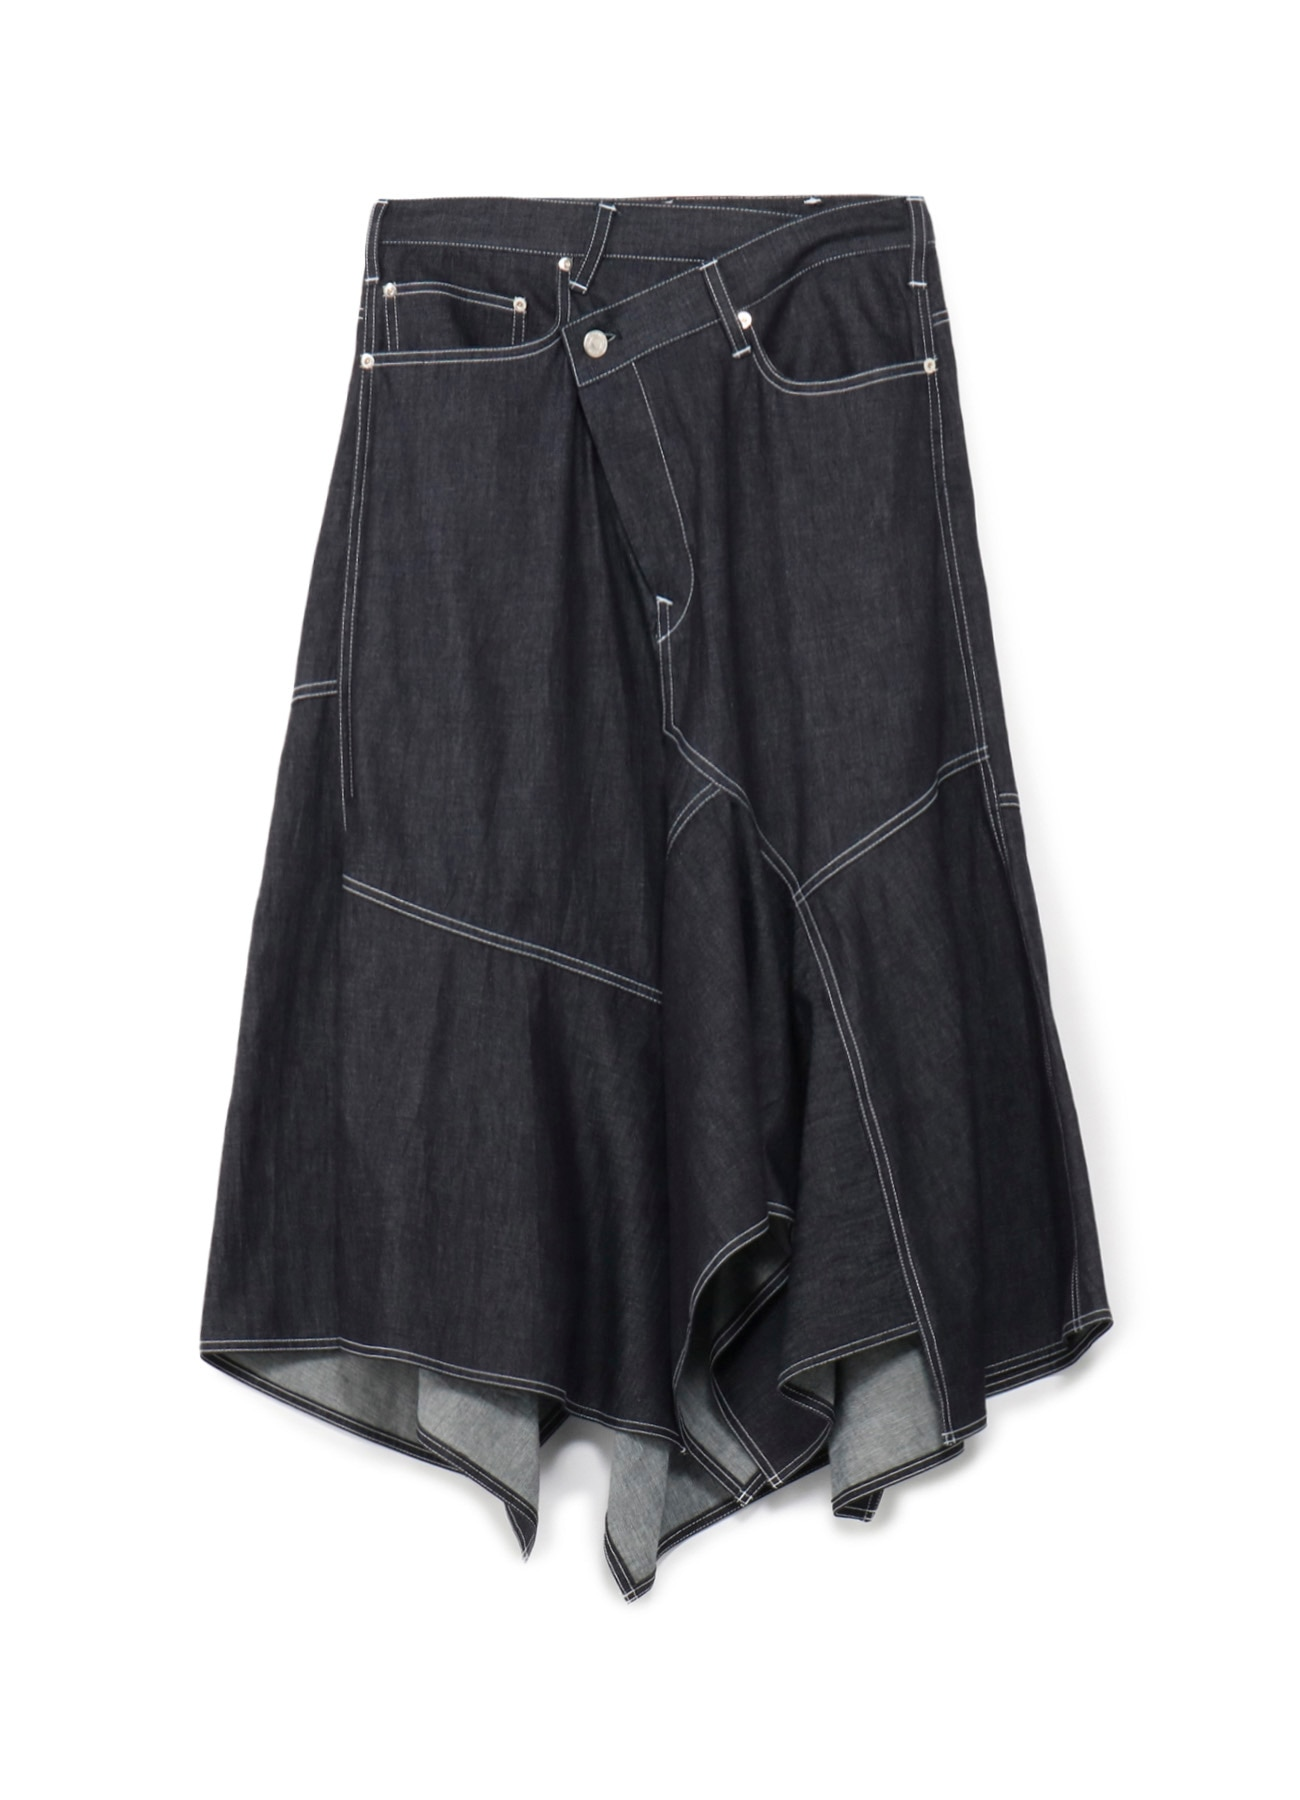 6oz Denim Flare Skirt